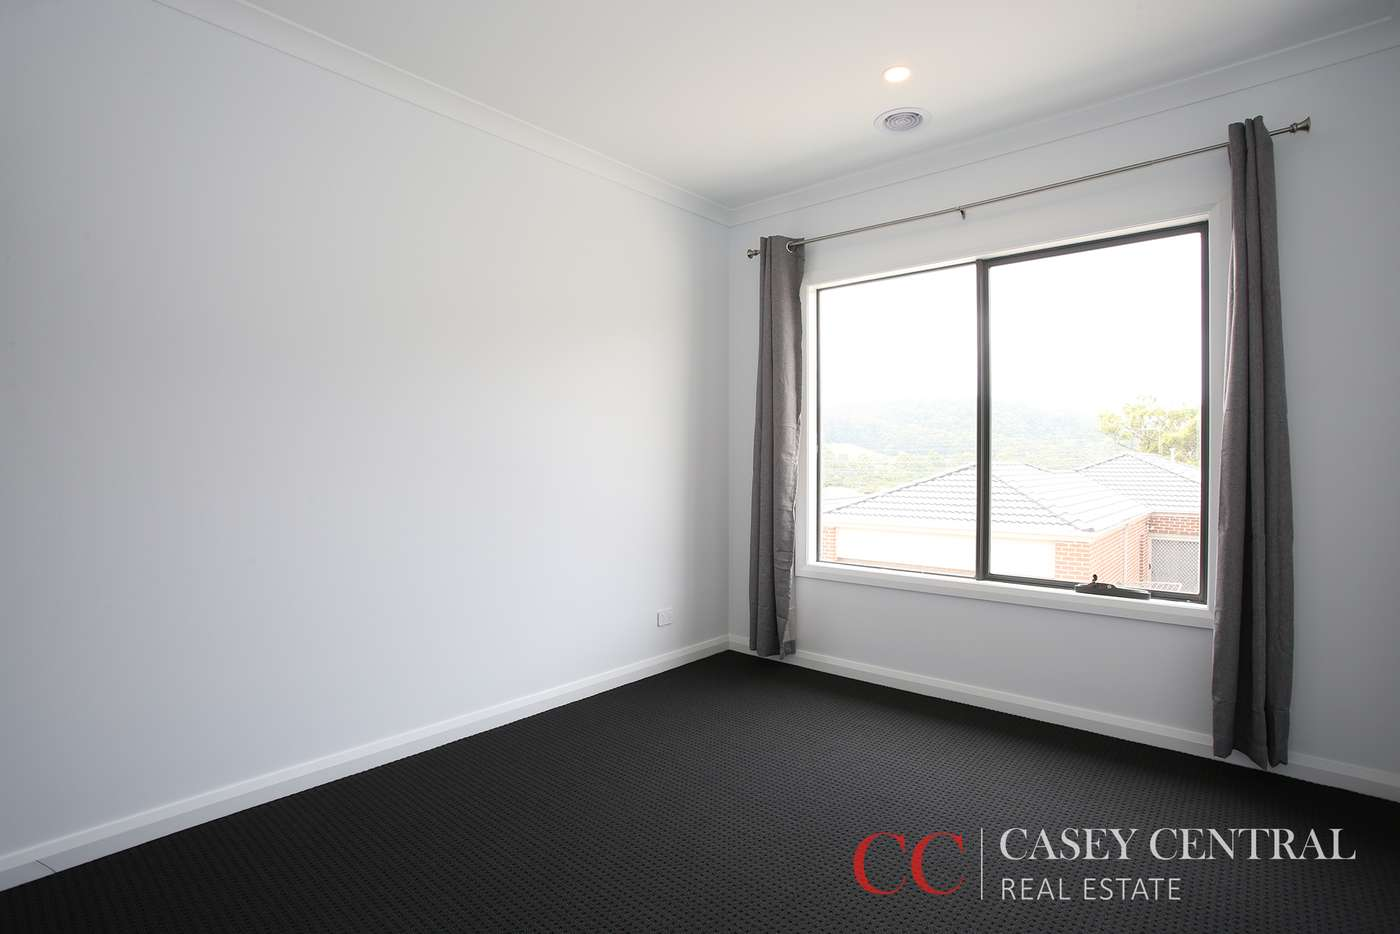 Seventh view of Homely house listing, 10 Butina Crest, Pakenham VIC 3810